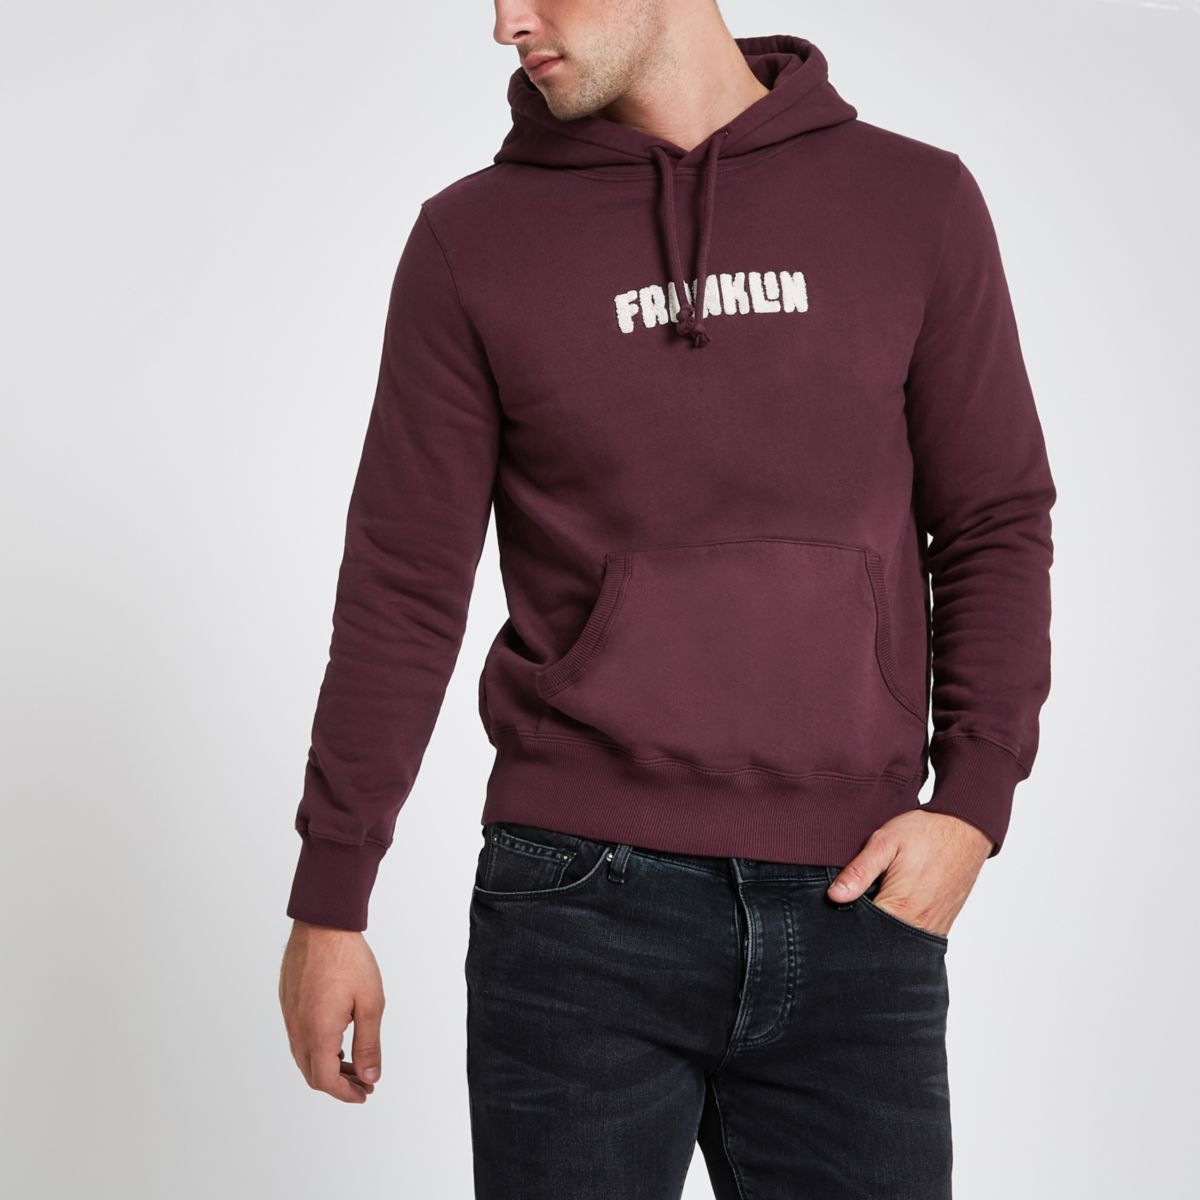 Franklin & Marshall – Hoodie in Bordeaux